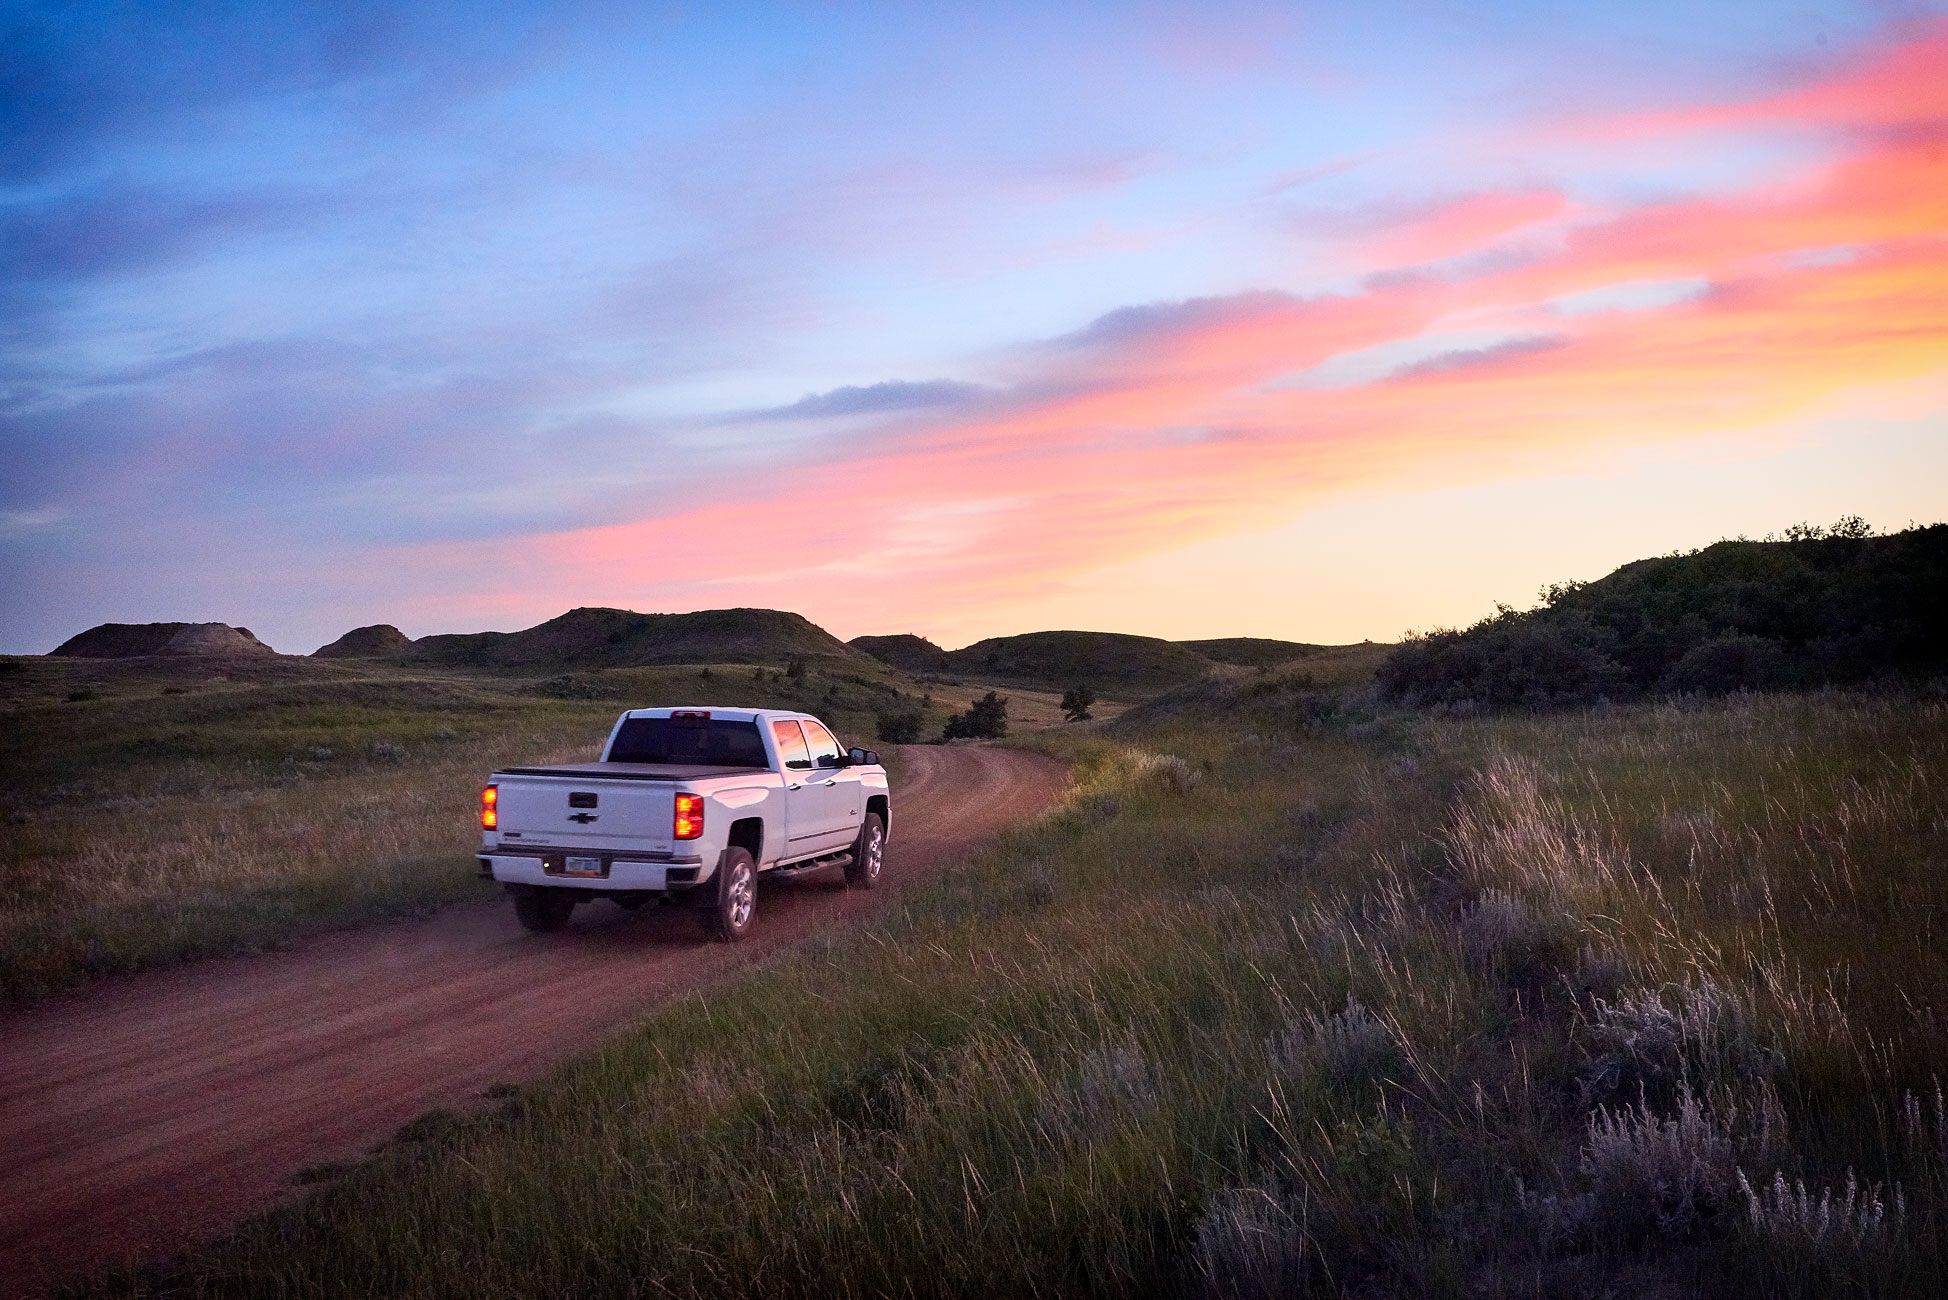 Chevy_Truck_North_Dakota_Sunset